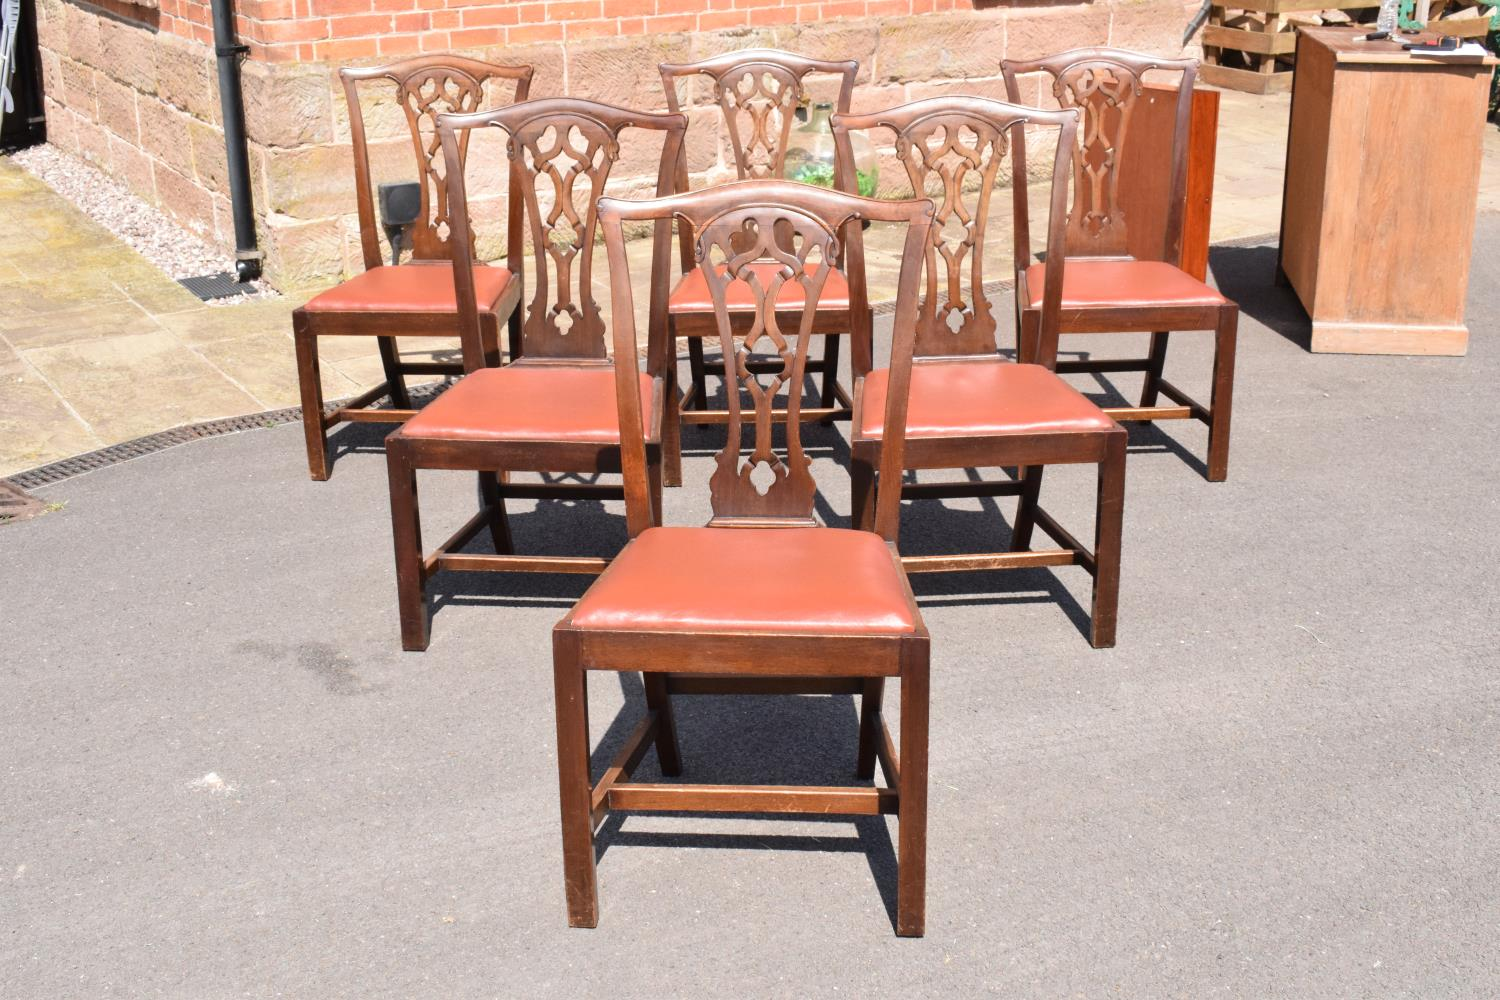 A set of 6 George III mahogany dining chairs circa 1770-1800 (6). 98cm tall. In good functional